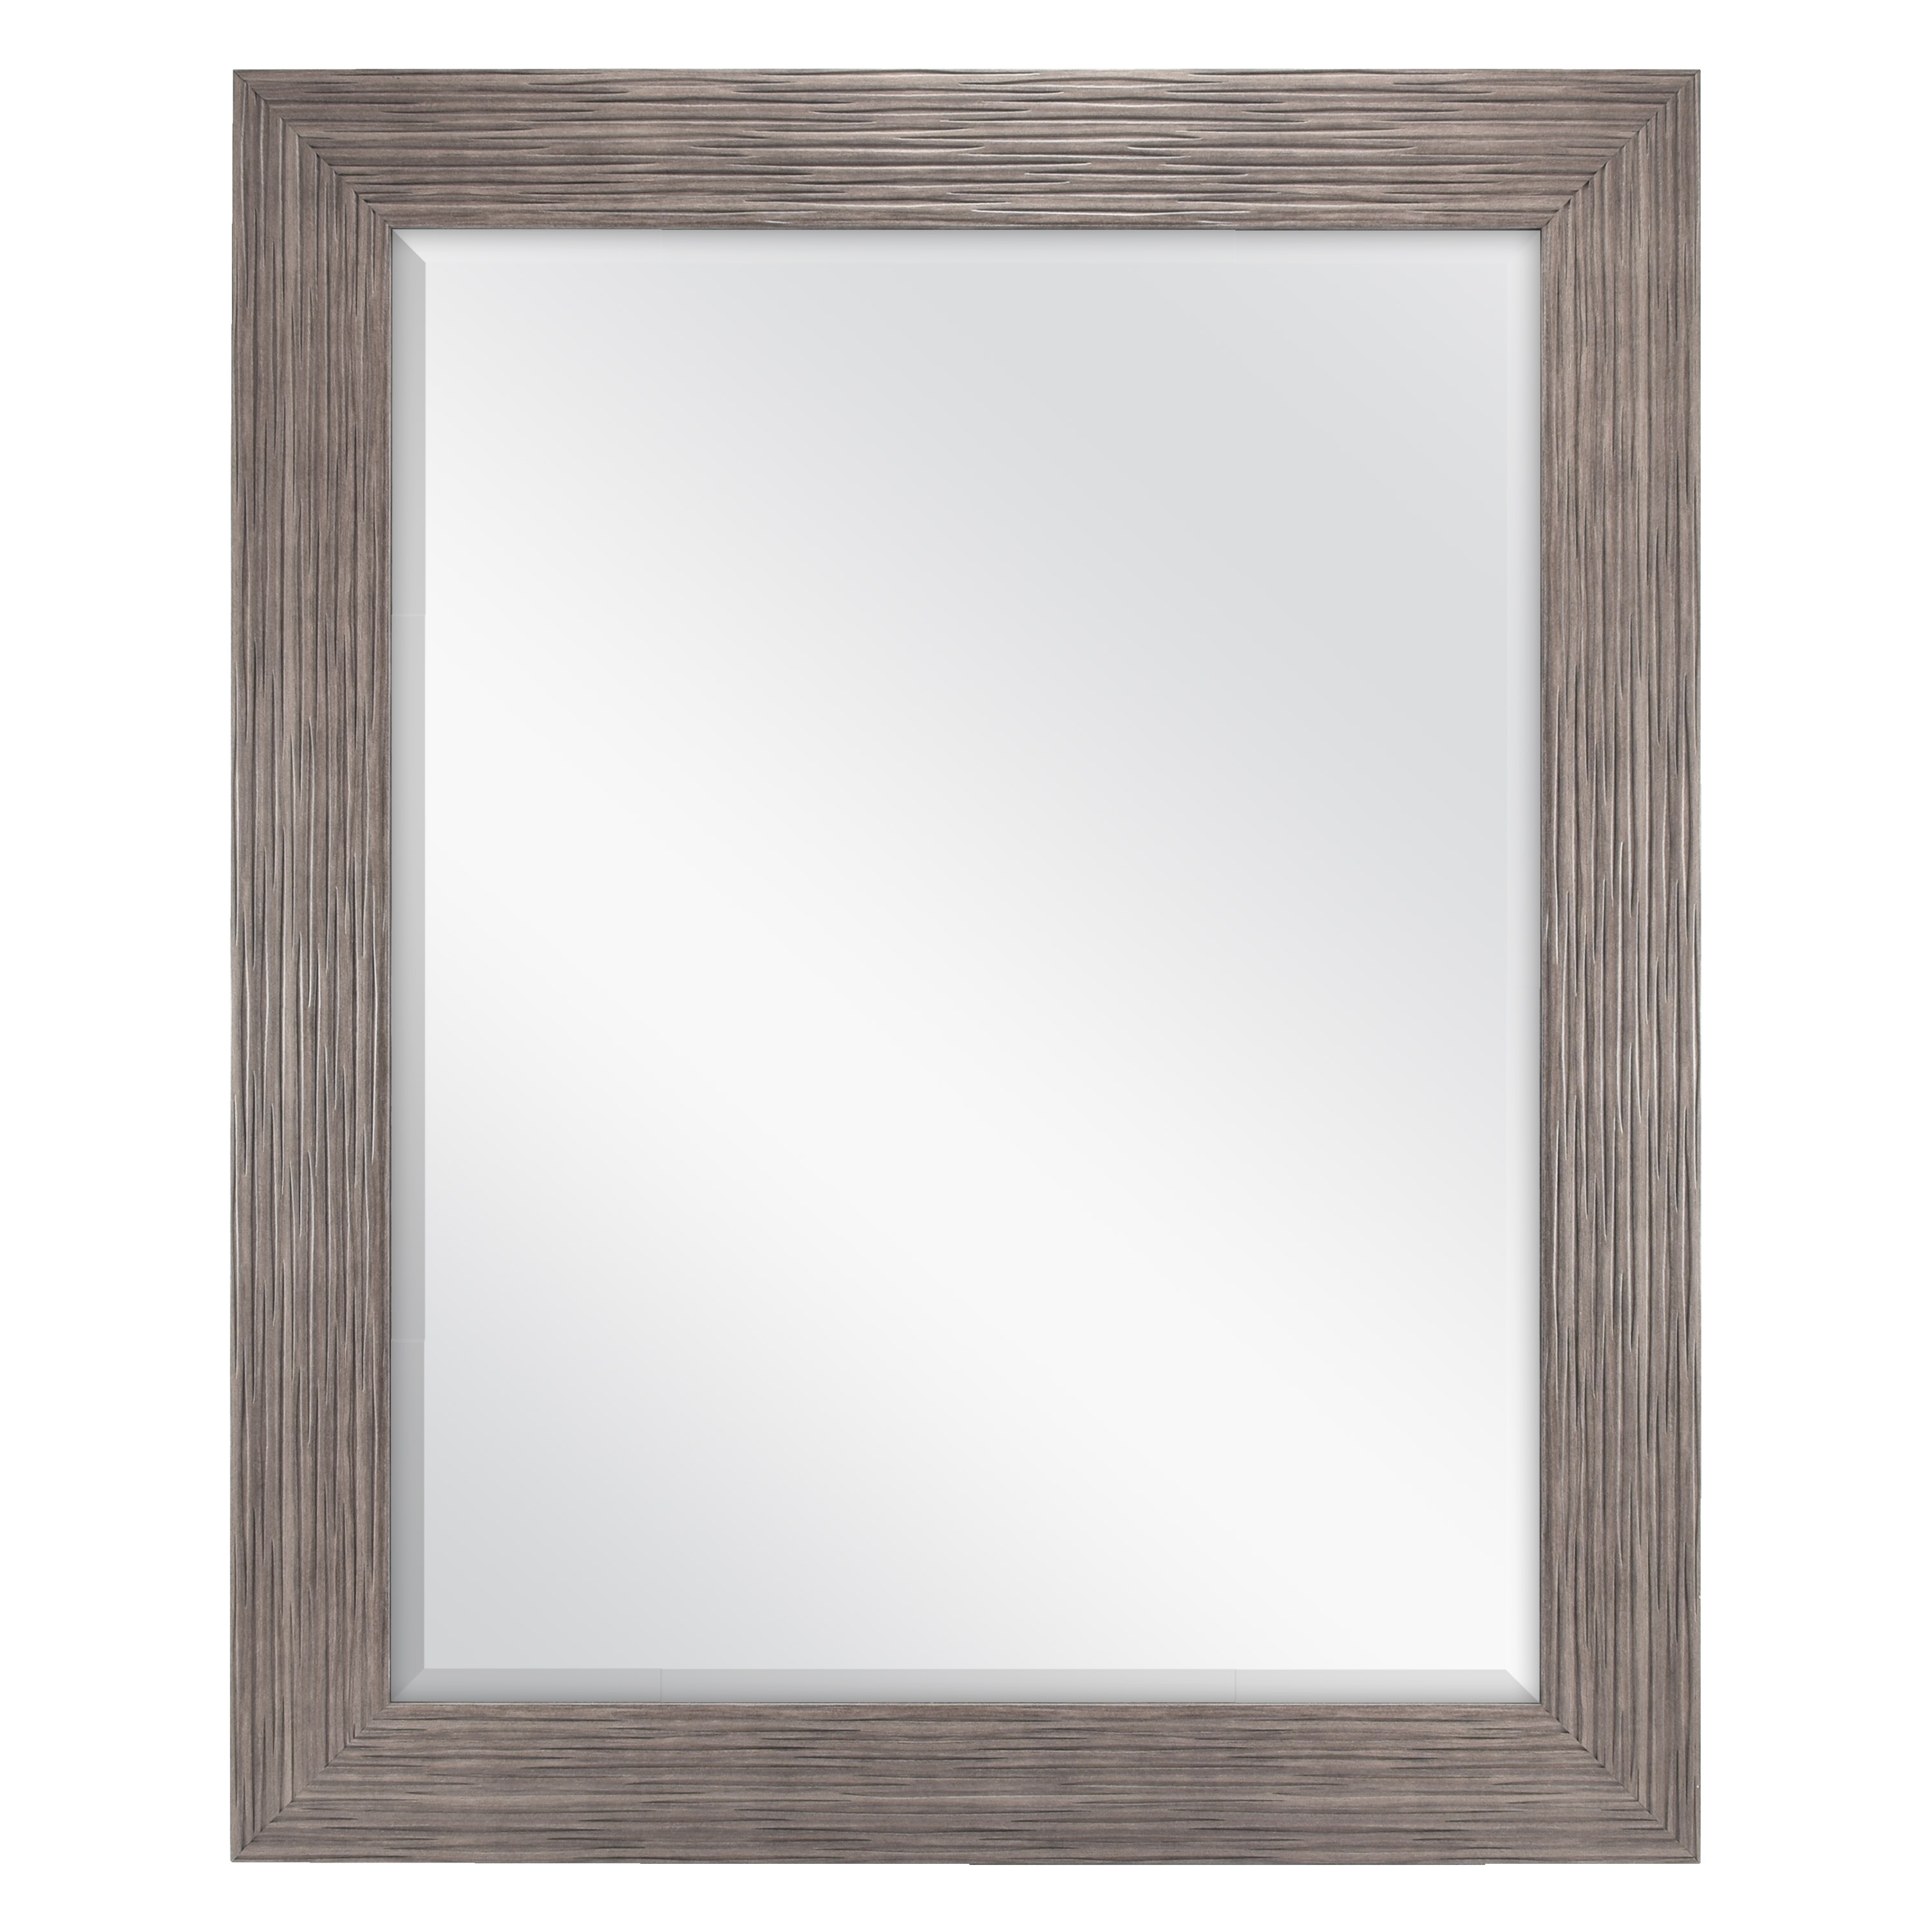 Beveled Wall Mirror better homes & gardens 27.5x33.5 woodgrain beveled wall mirror